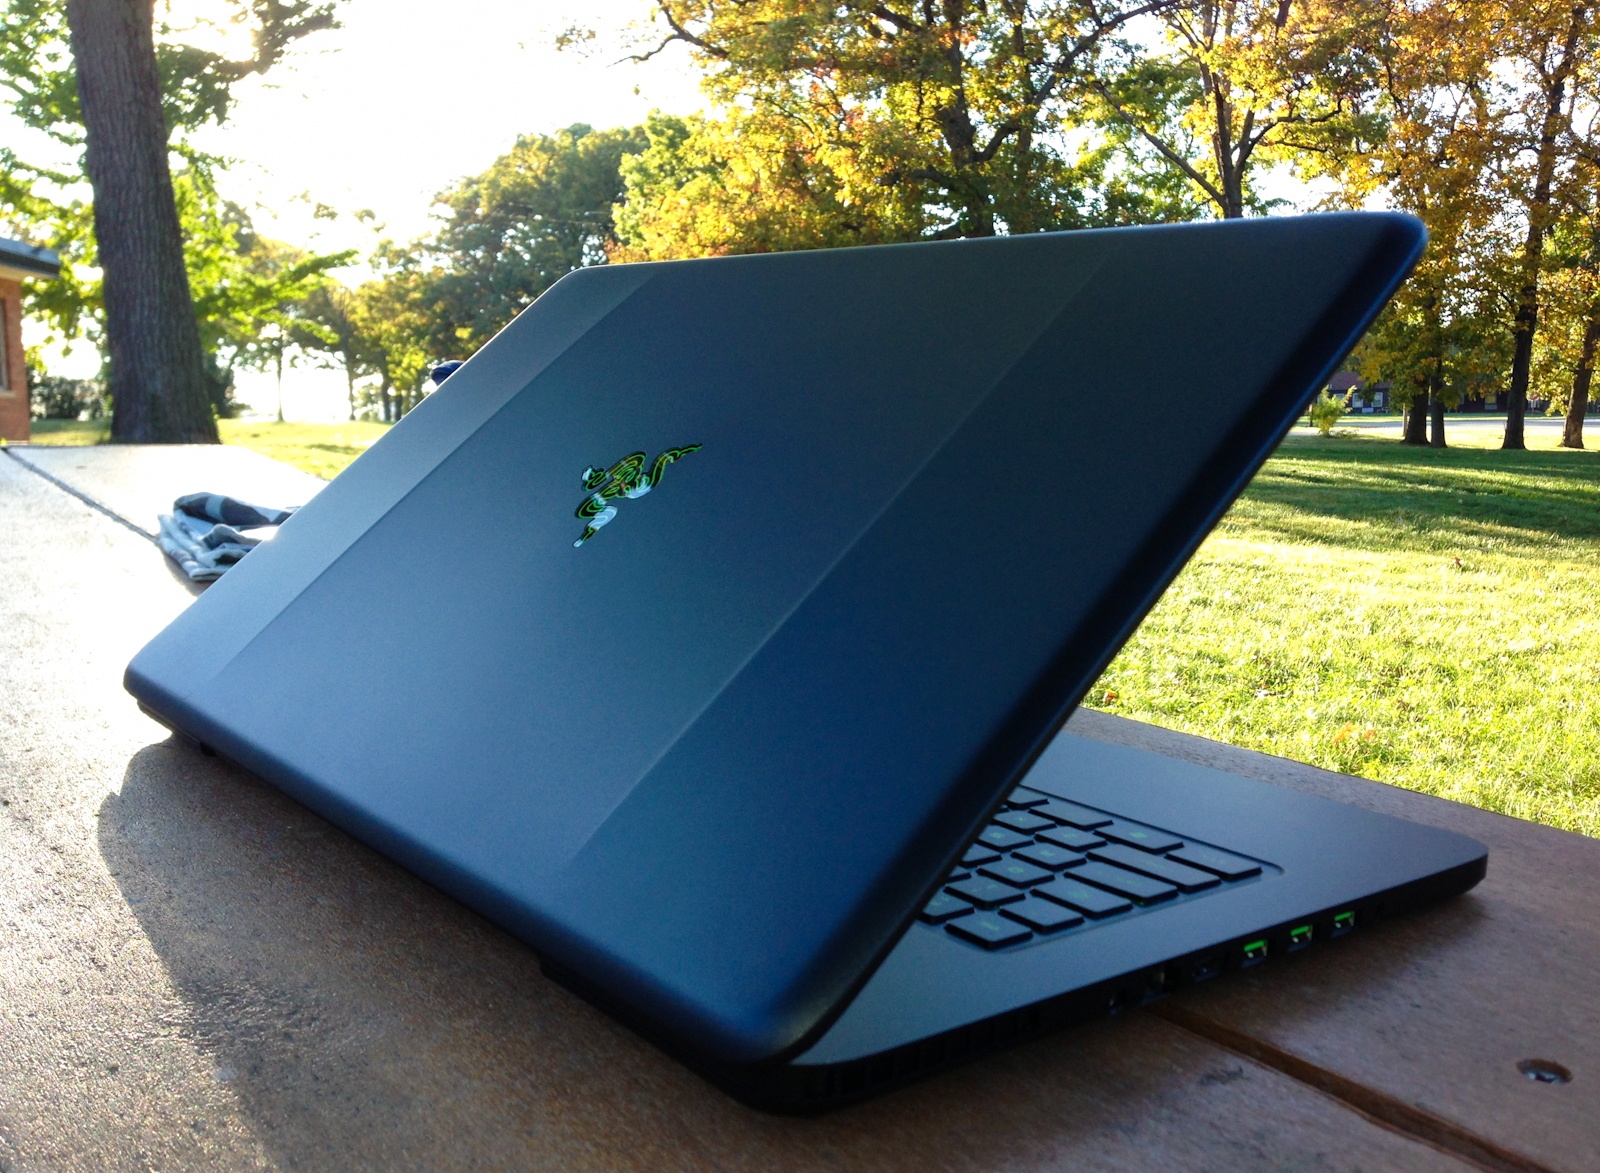 The New Razer Blade: Thoroughly Reviewed